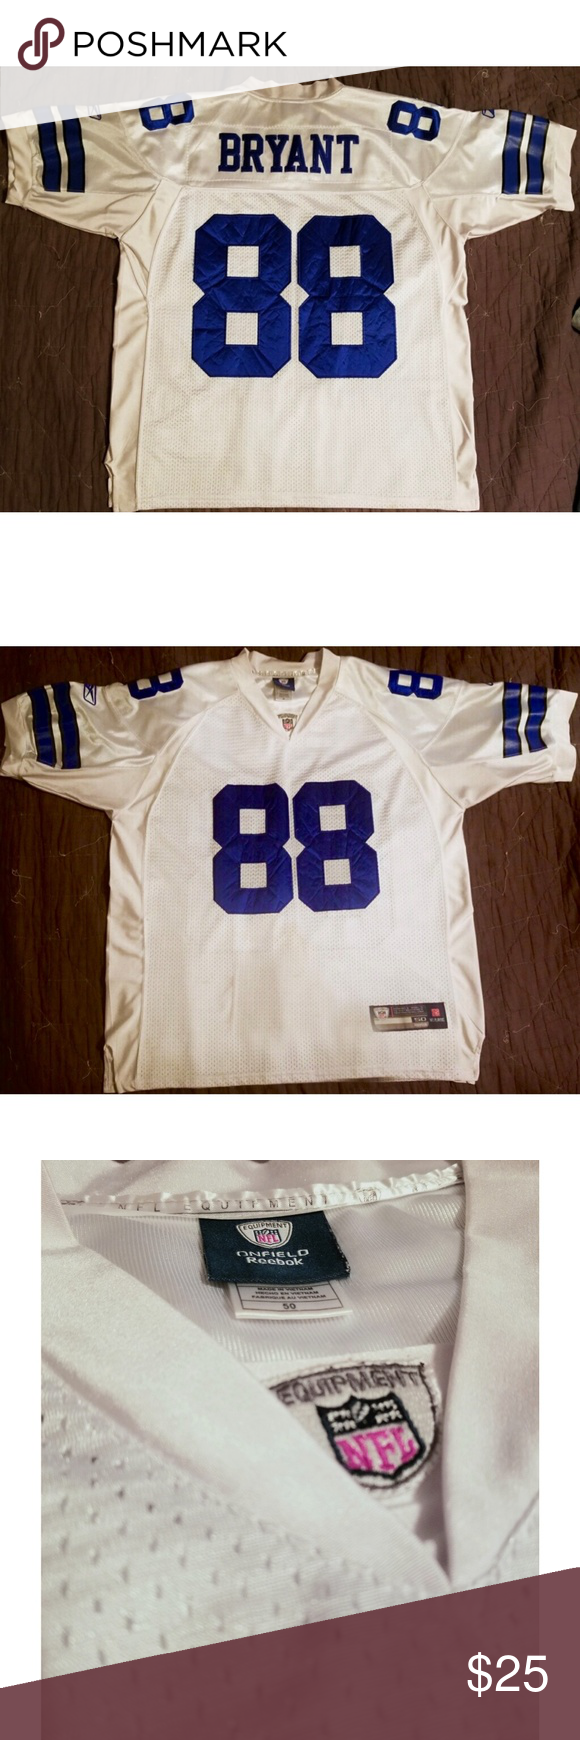 Dez Bryant Cowboys Reebok Jersey Dez Bryant Cowboys Jersey   Good condition will almost always accept offers (50) Reebok Shirts Tees - Short Sleeve #dezbryantjersey Dez Bryant Cowboys Reebok Jersey Dez Bryant Cowboys Jersey   Good condition will almost always accept offers (50) Reebok Shirts Tees - Short Sleeve #dezbryant Dez Bryant Cowboys Reebok Jersey Dez Bryant Cowboys Jersey   Good condition will almost always accept offers (50) Reebok Shirts Tees - Short Sleeve #dezbryantjersey Dez Bryant #dezbryantjersey